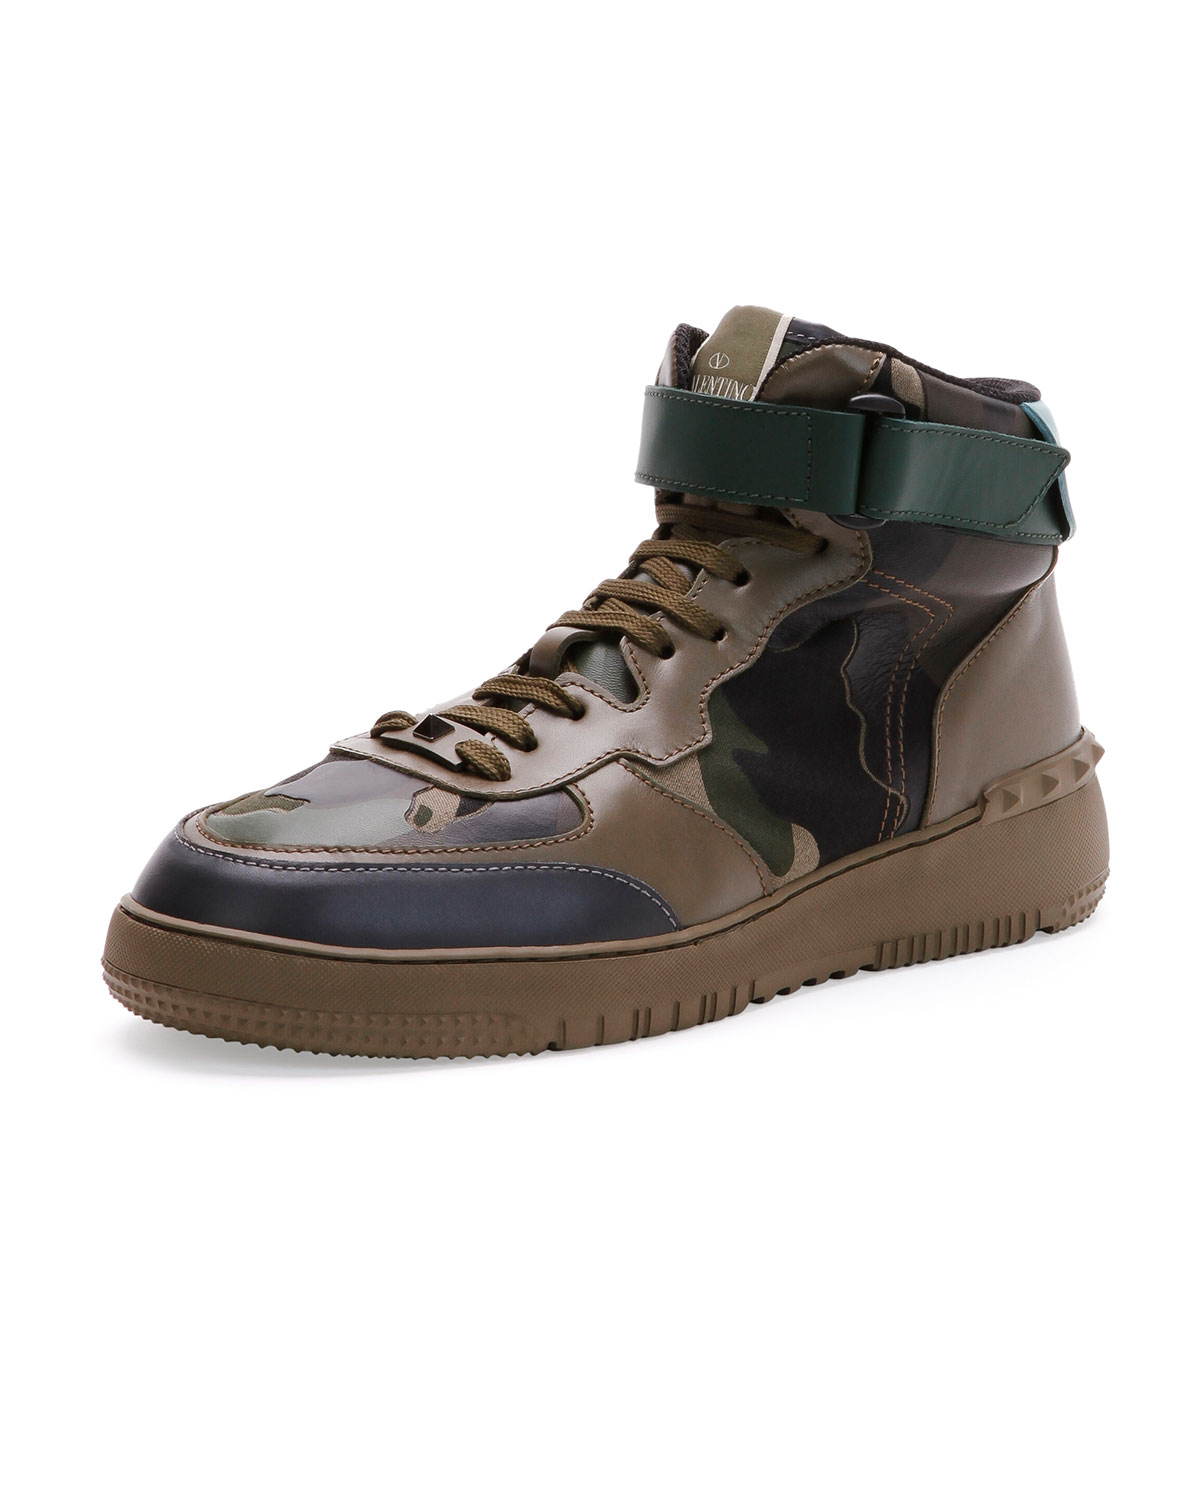 valentino rockstud camo high top sneaker in green for men lyst. Black Bedroom Furniture Sets. Home Design Ideas